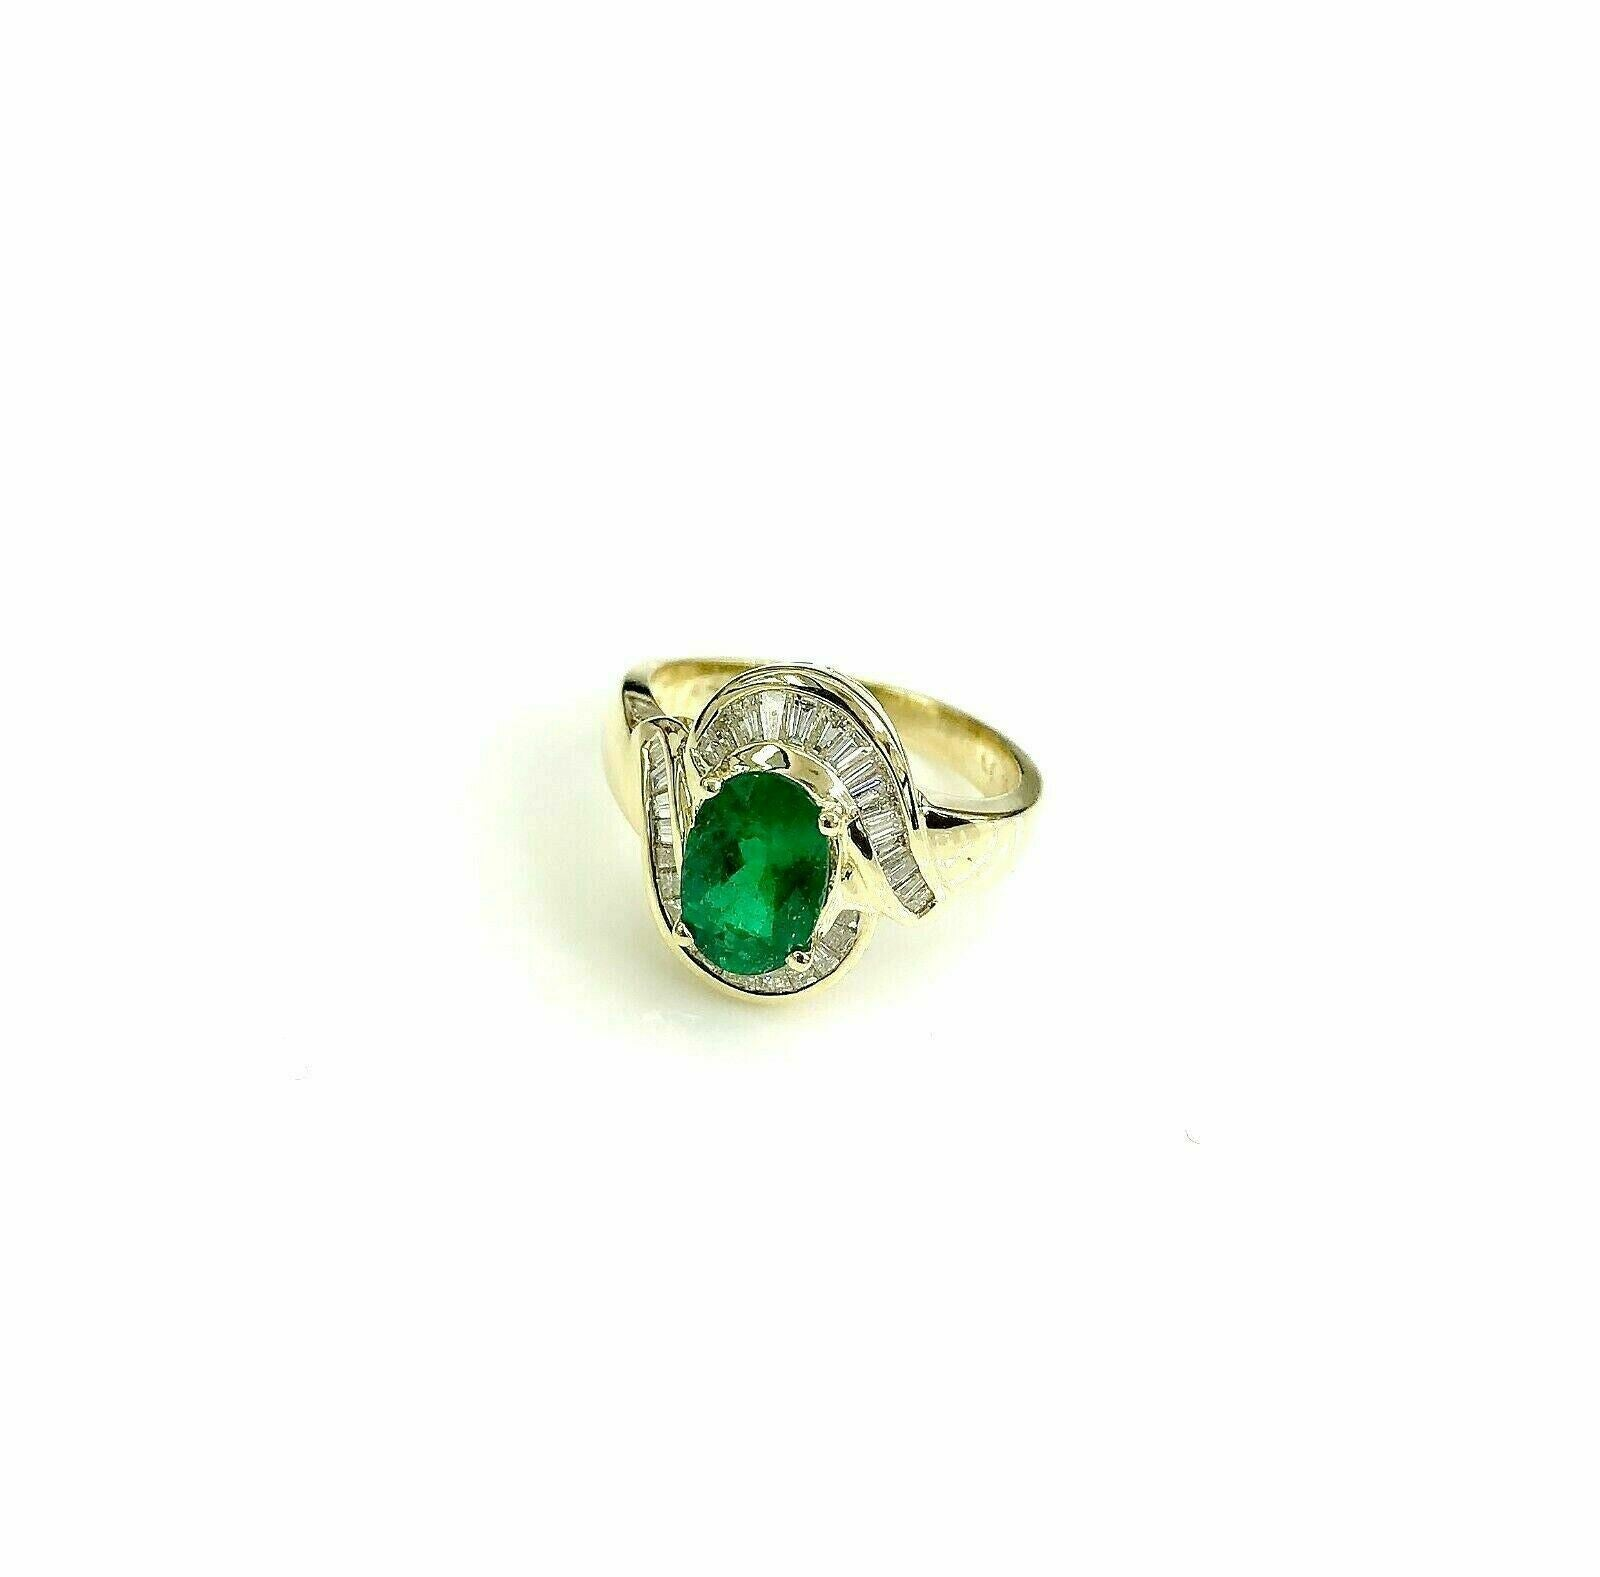 2.30 Carats Oval Emerald & Baguette Diamond Anniversary Cocktail Ring 18k Gold